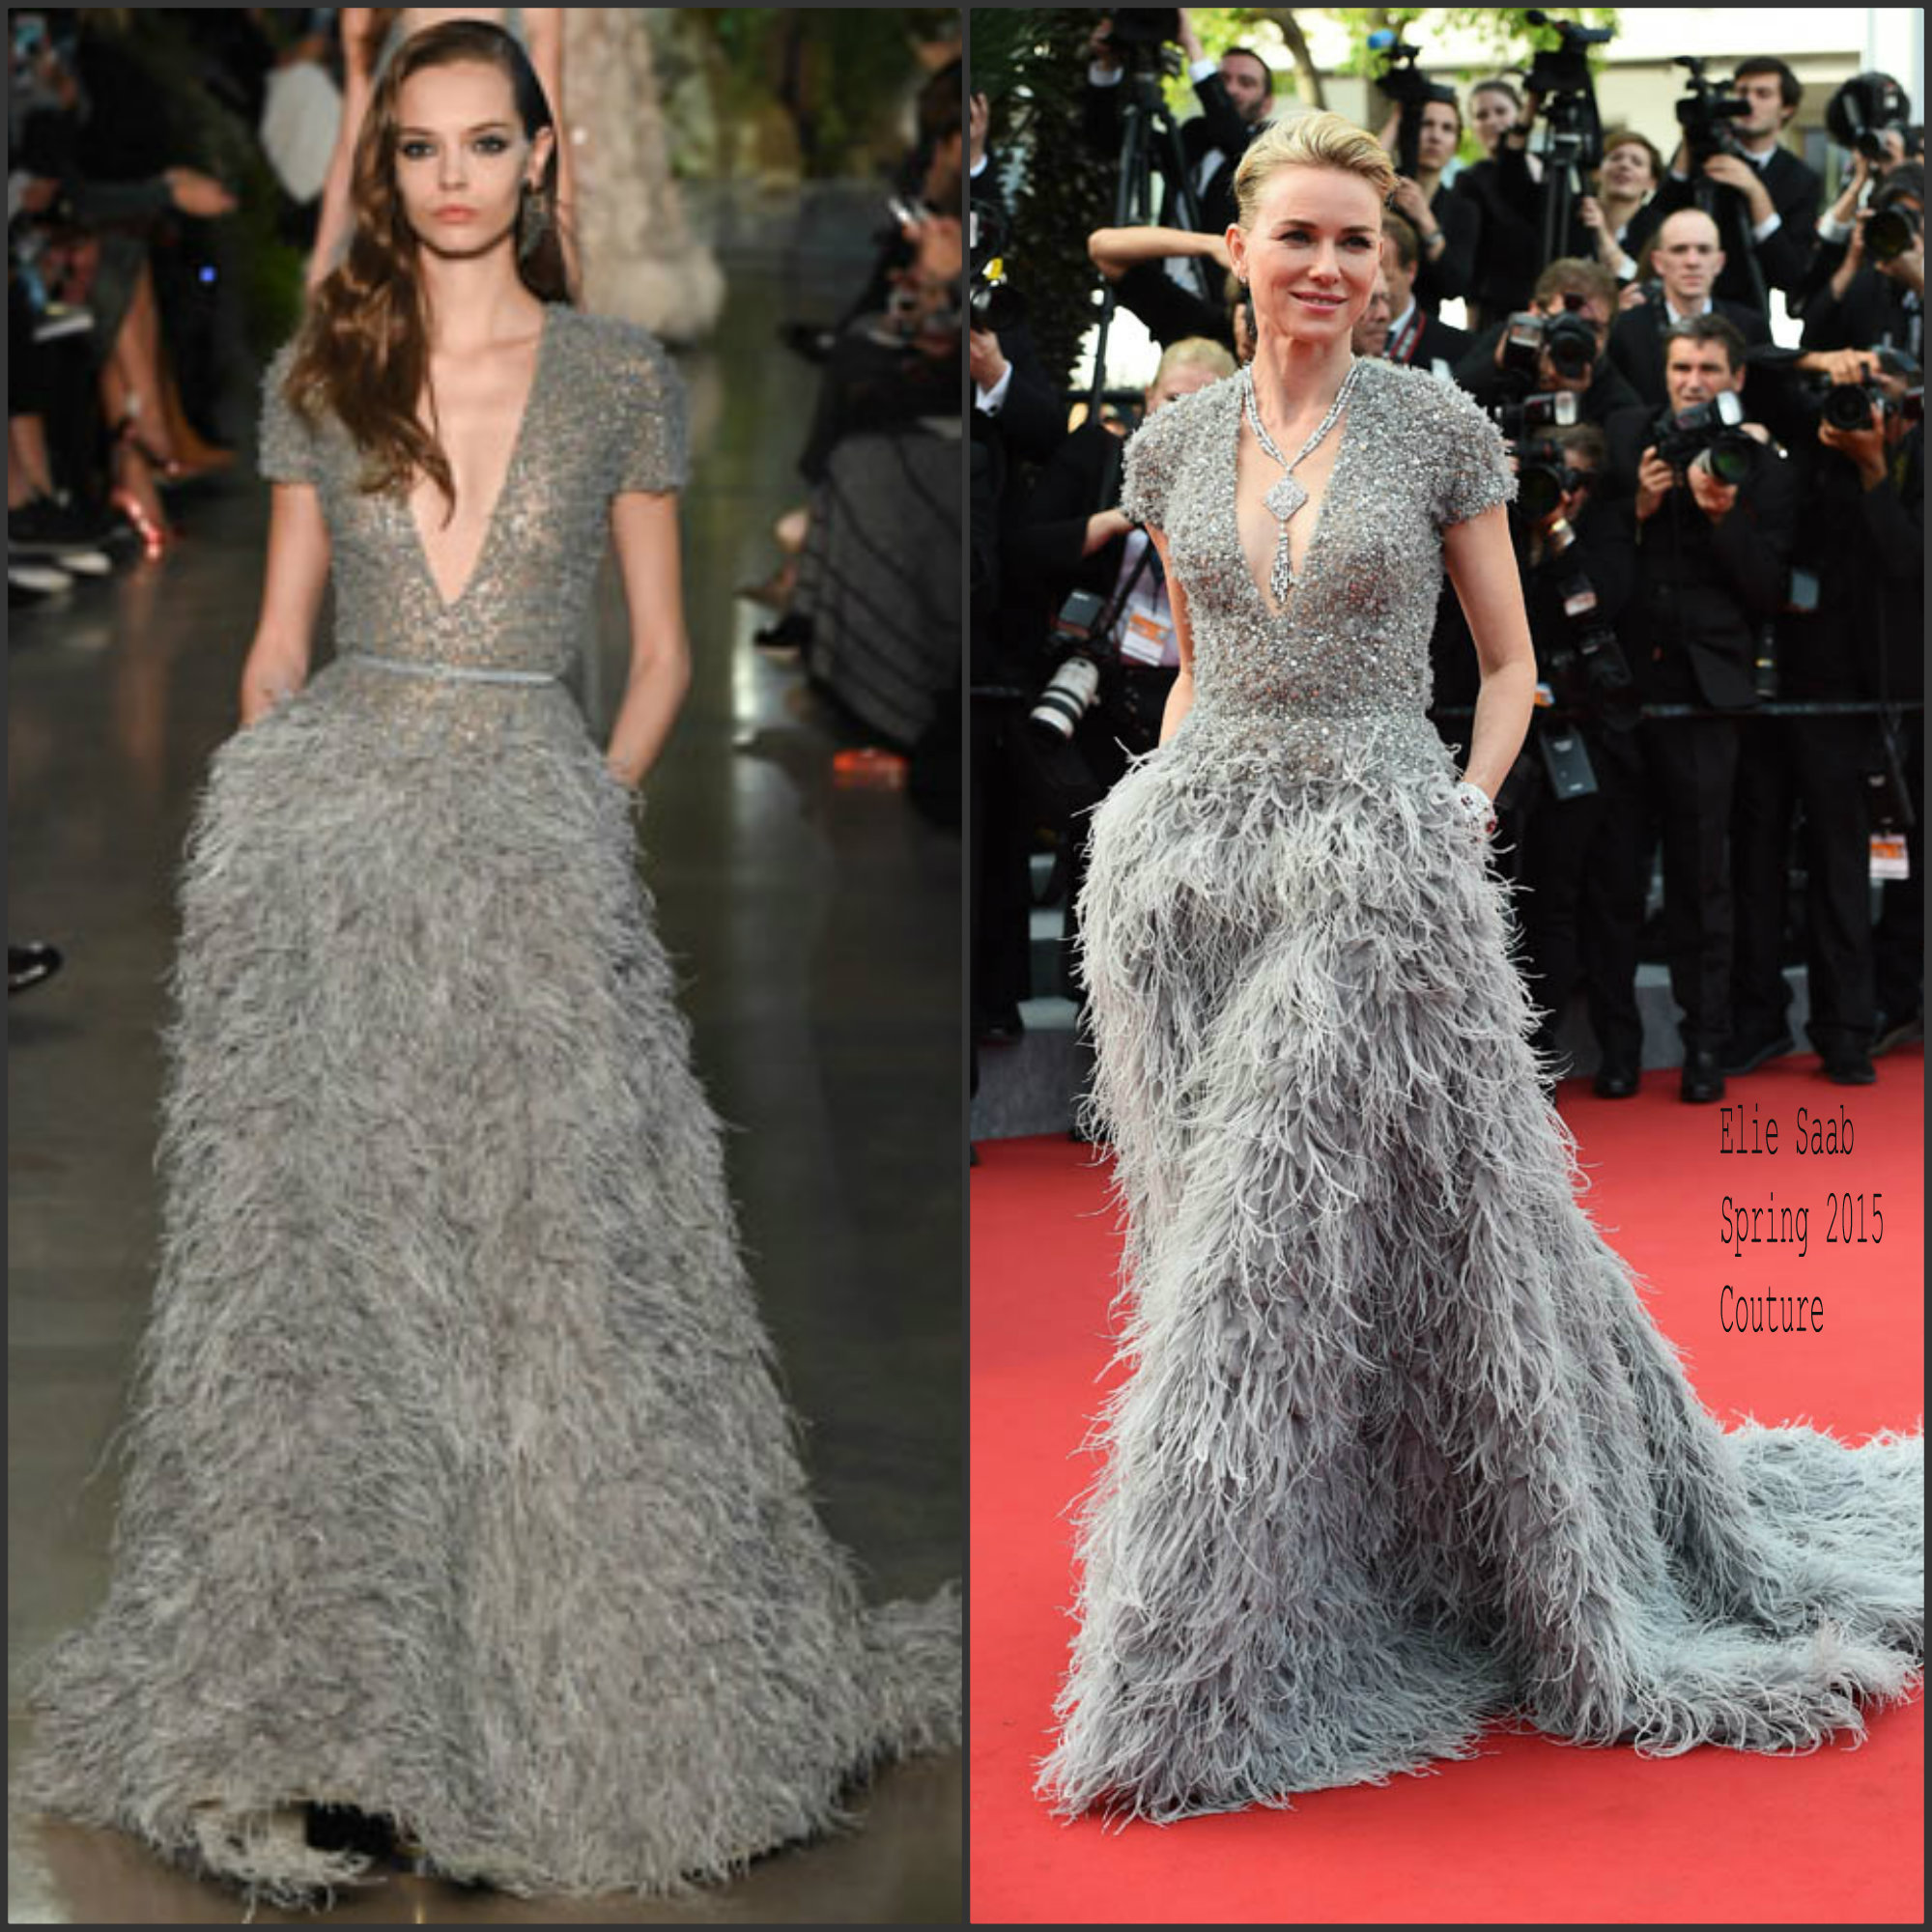 naomi-watts-in-elie-saab-couture-at-the-la-tete-cannes-film-festival-premiere-opening-ceremony